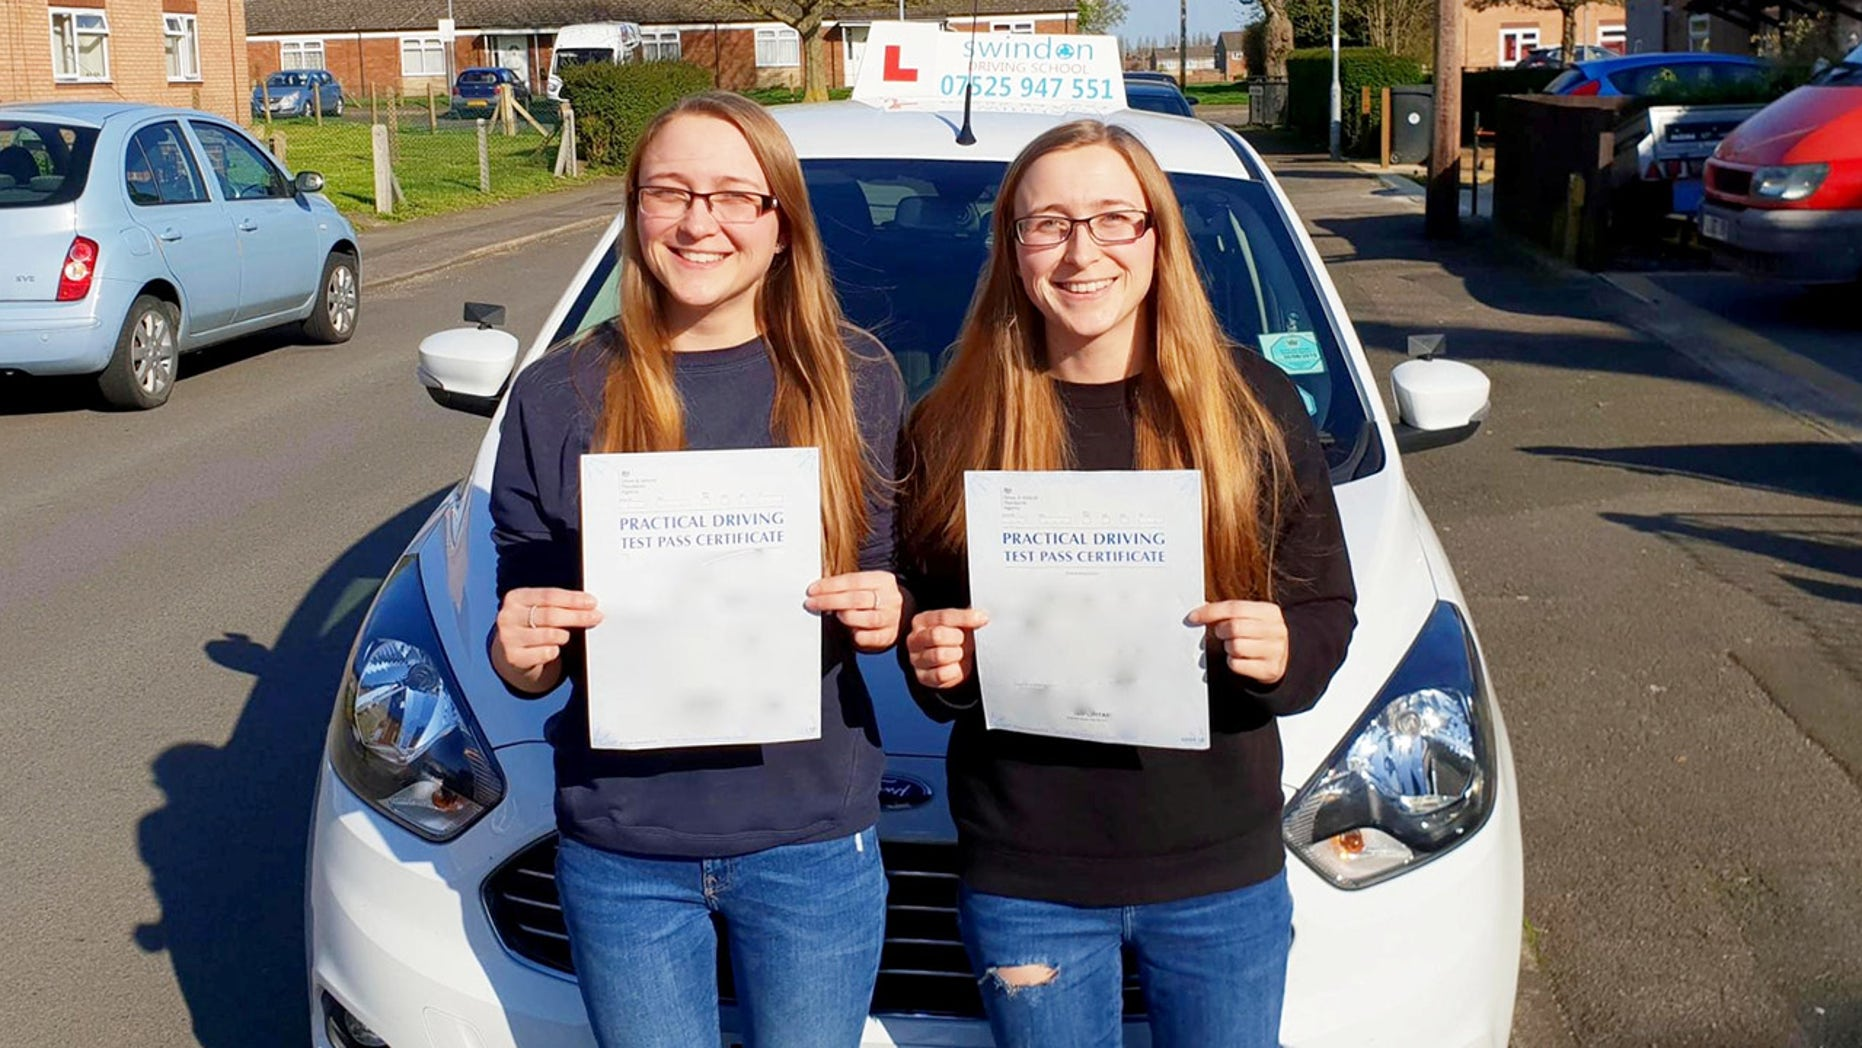 """Twins Becky and Nicky Dodson passed their driving test on the same day.  Twin sisters are celebrating after both passing their driving tests - on the same day.  See SWNS story SWTWINS.  The pair even stuck to the traditional order - with first-born Becky Dodson passing hours before her sister.  The 24-year-olds faced adversity when Man United fan Nicky dislocated her shoulder six days before the test - celebrating a winning goal in the Manchester derby.  And even the date - Friday, April 13 - was a bad omen they were unfazed by.  Nicky and Becky of Swindon, Wilts, both bought 2016 plate Peugeot 208s after passing their test and drove to work for the first time today.  Dad Melvyn, 55, said the girls """"share each other's pain and joy"""" and """"leapt into each other's arms"""" after learning they'd both passed.  The twins, who were born eight weeks premature, work for a firm which supplies wiring for other businesses. They even started on the same day."""